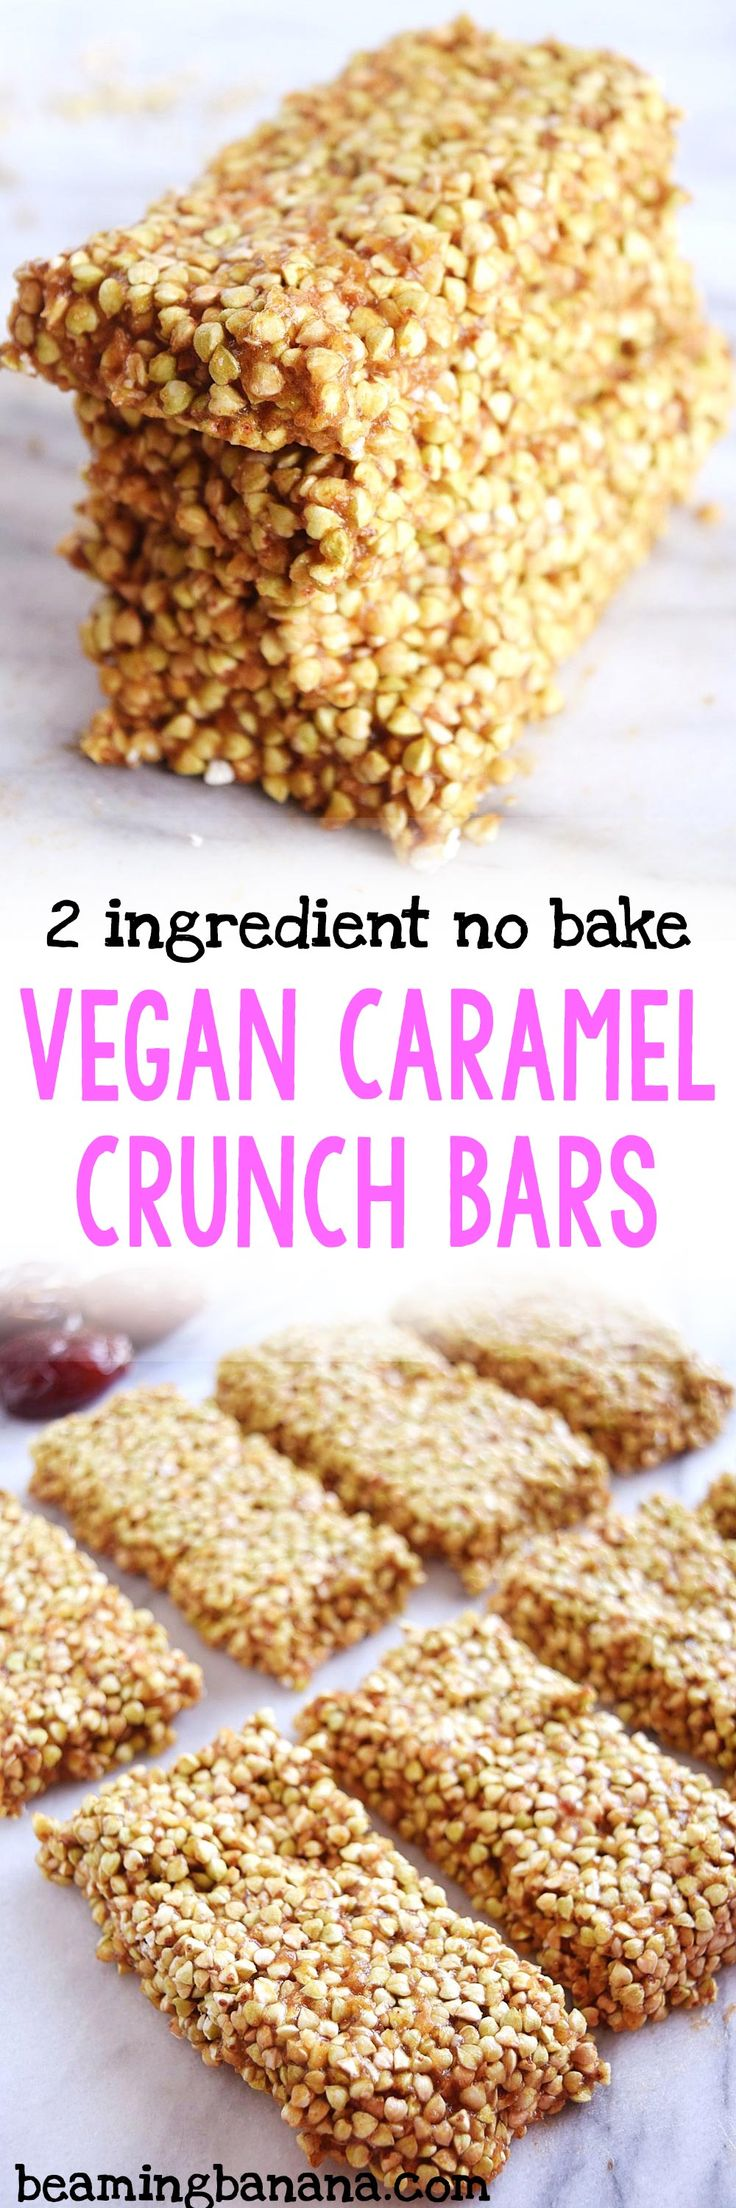 Vegan caramel crunch bars are full of crunchy texture and sweet caramel flavor! Made with just 2 ingredients, gluten free and naturally sweet.